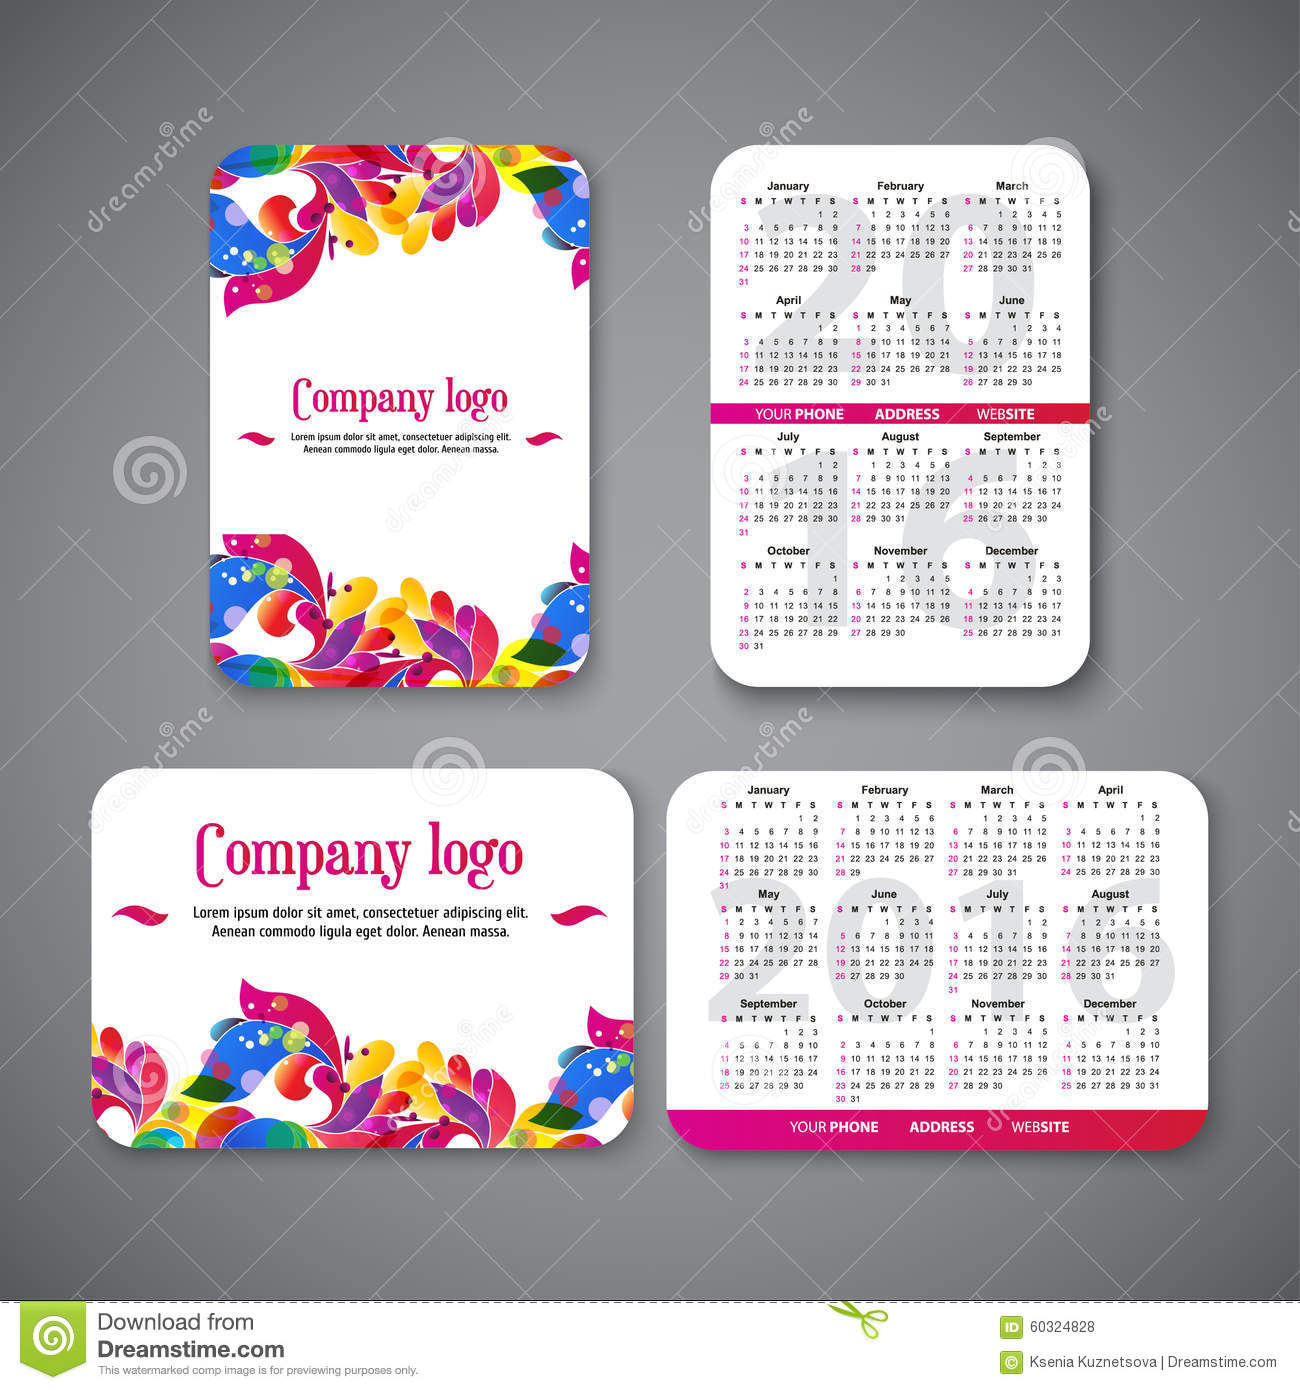 Template Design Pocket Calendar 2016 With Patterns Stock Vector ...